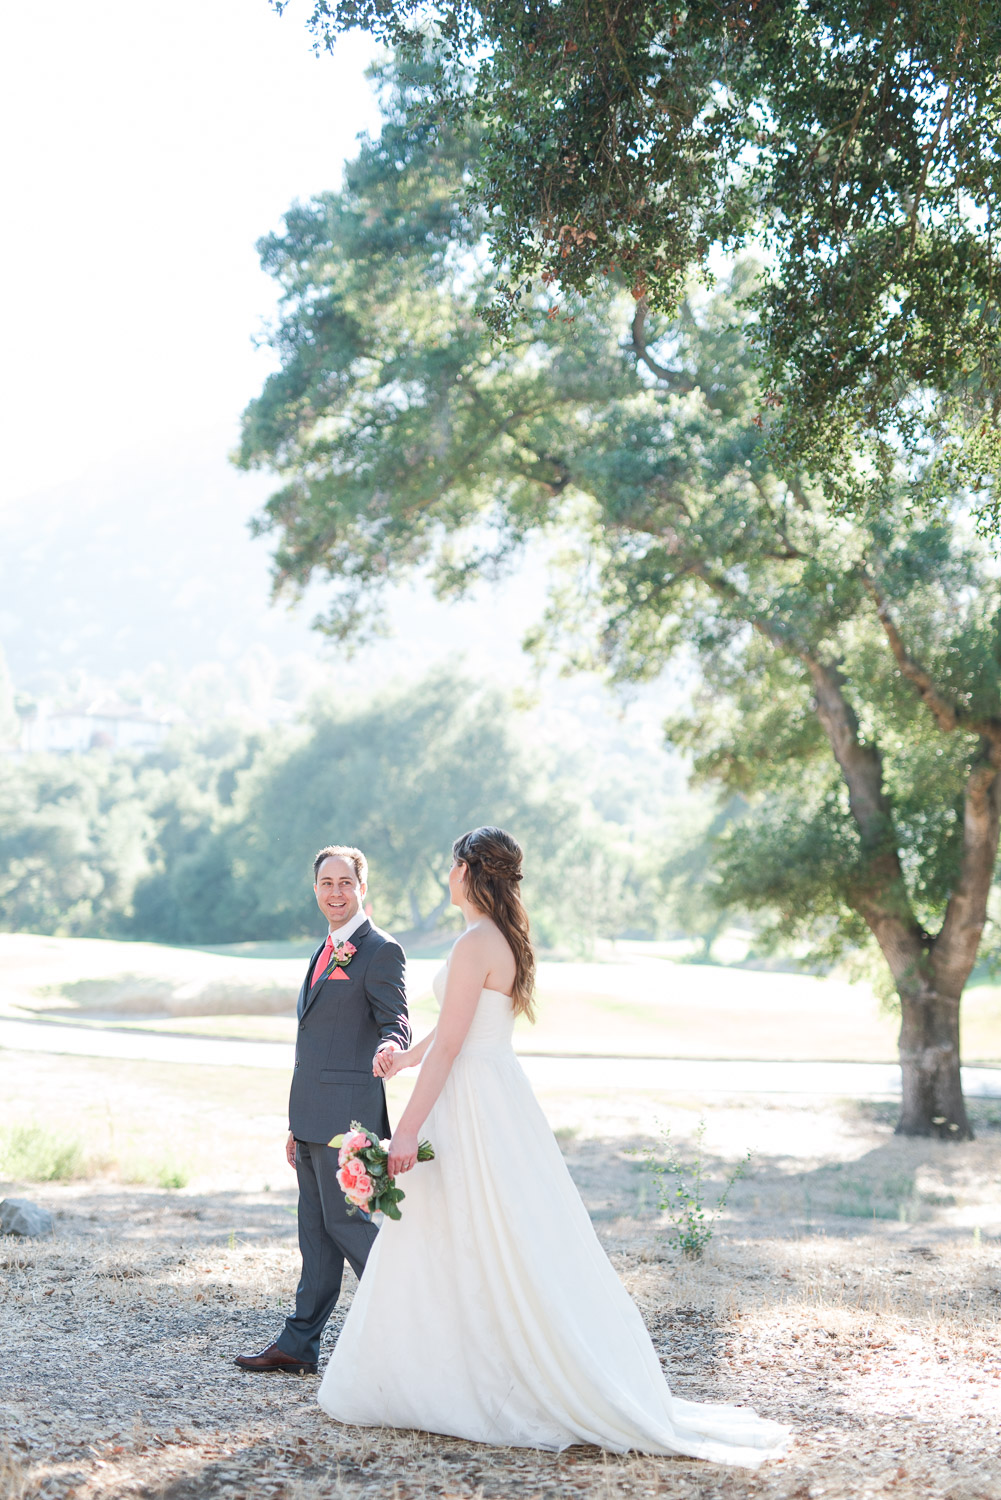 Mt. Woodson Castle Wedding // Brandi Welles Photographer // Bride and Groom